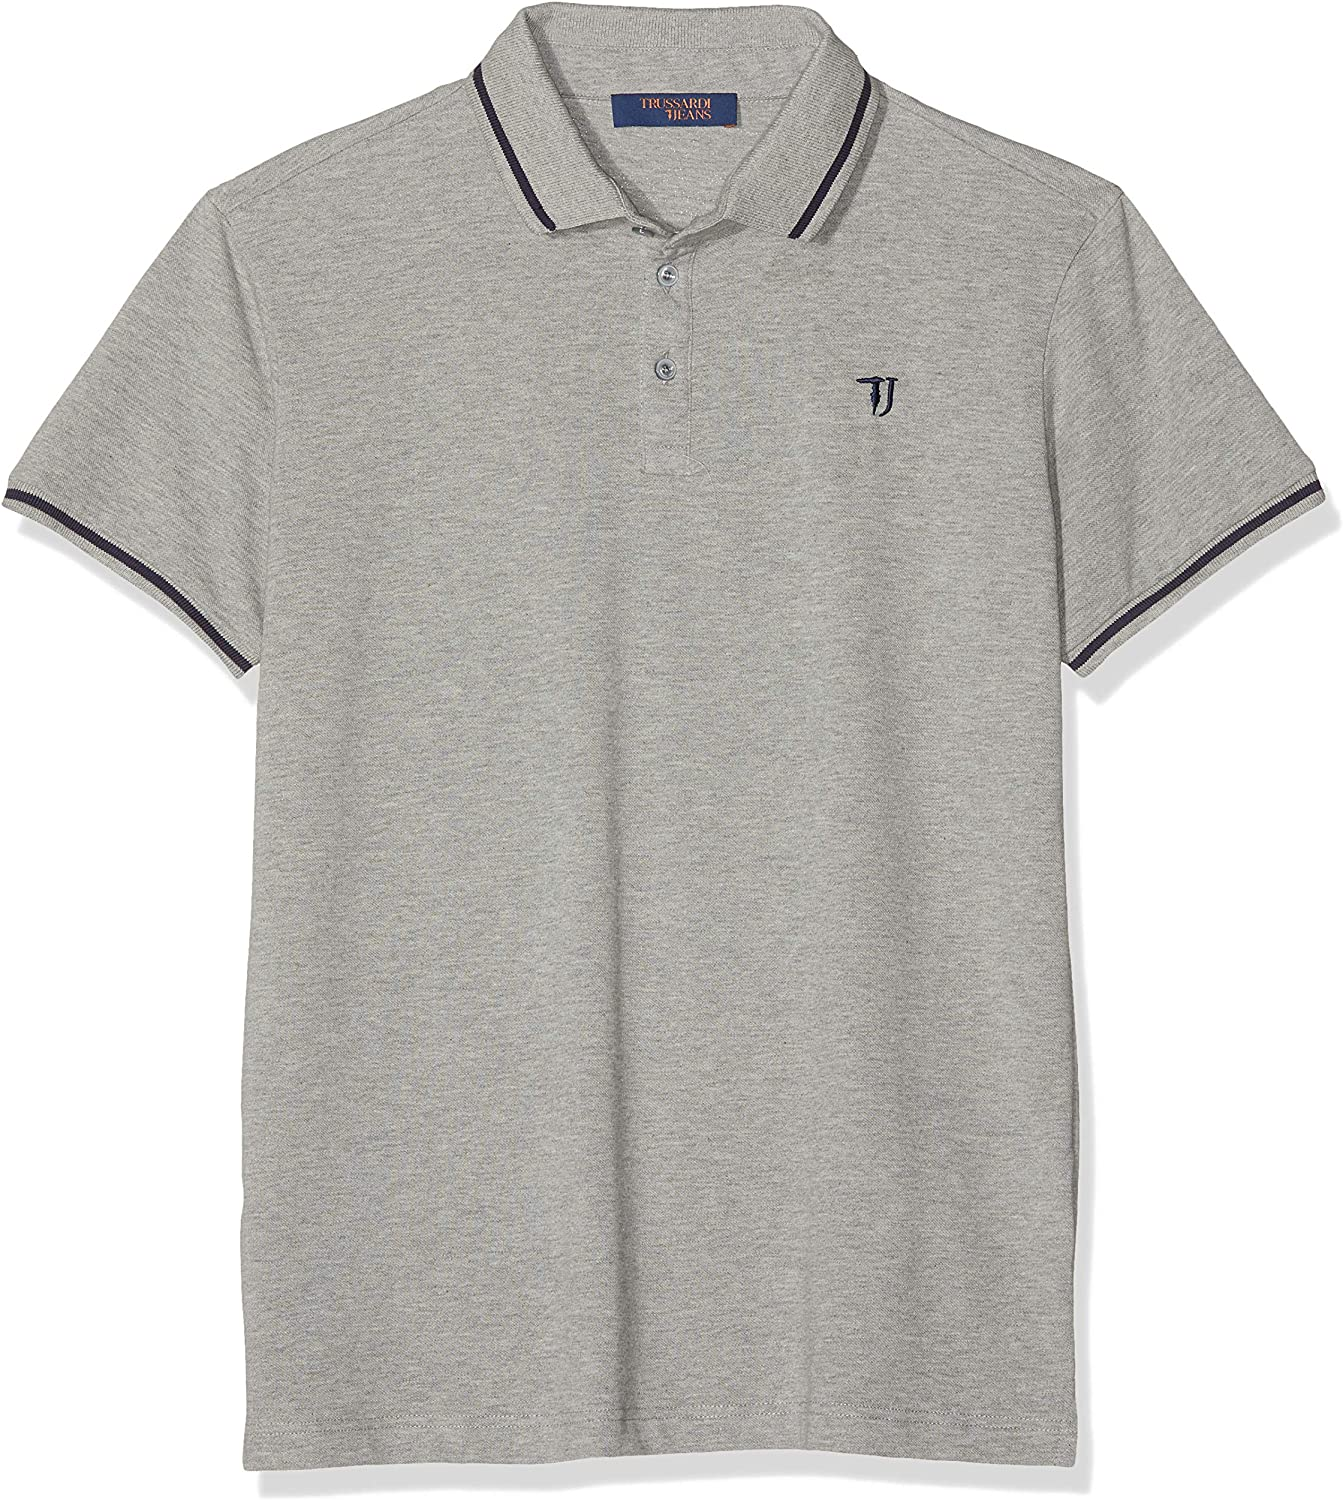 Trussardi Jeans Short Sleeves Polo Shirt Pure Hombre